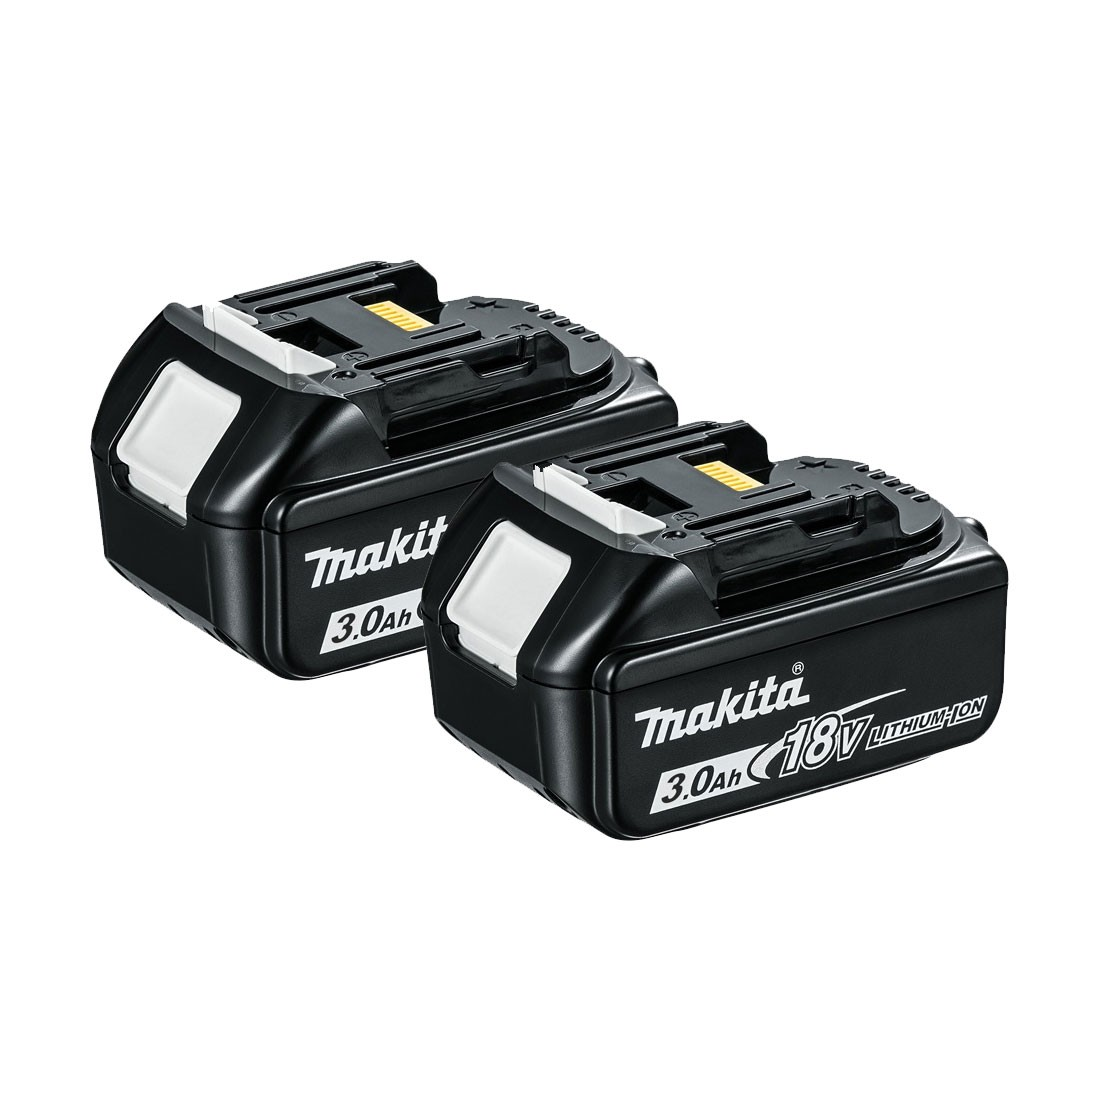 Makita Genuine BL1830 18v 3.0ah Lithium-ion LXT Battery FIVE PACK